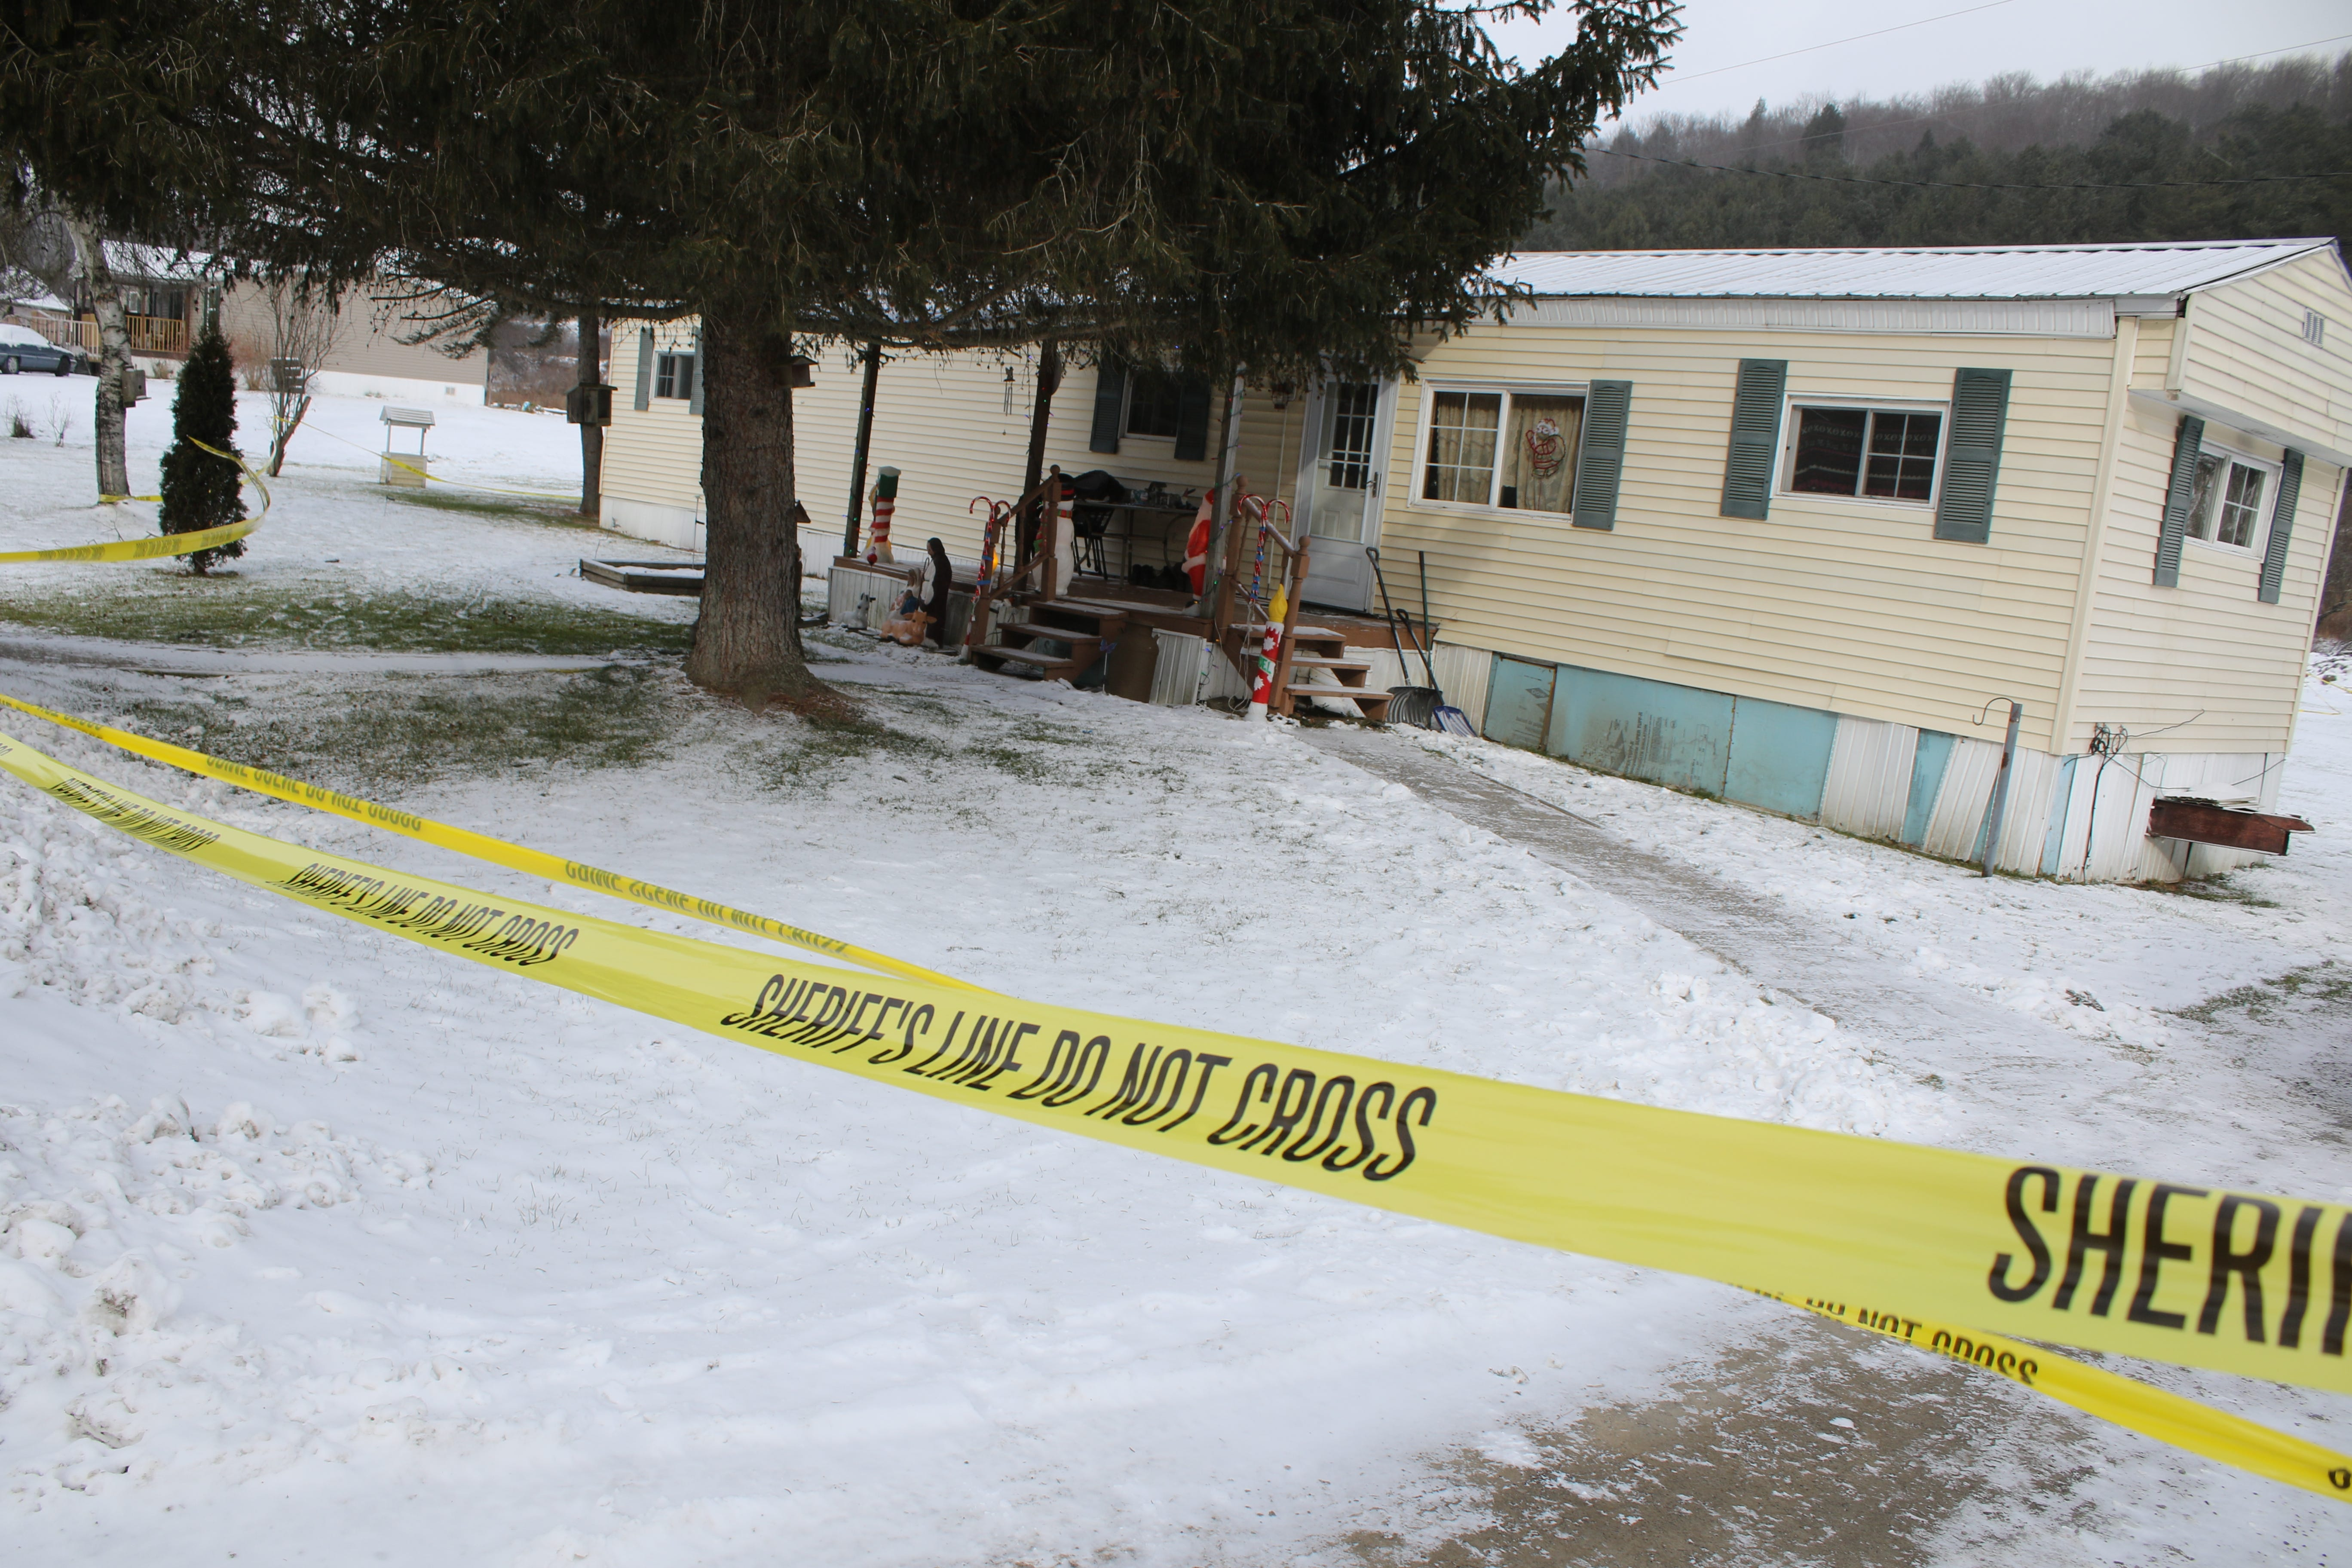 The crime scene at the Laurens residence in Otsego County, where Timothy and Solveig Perry were murdered in December 2017.